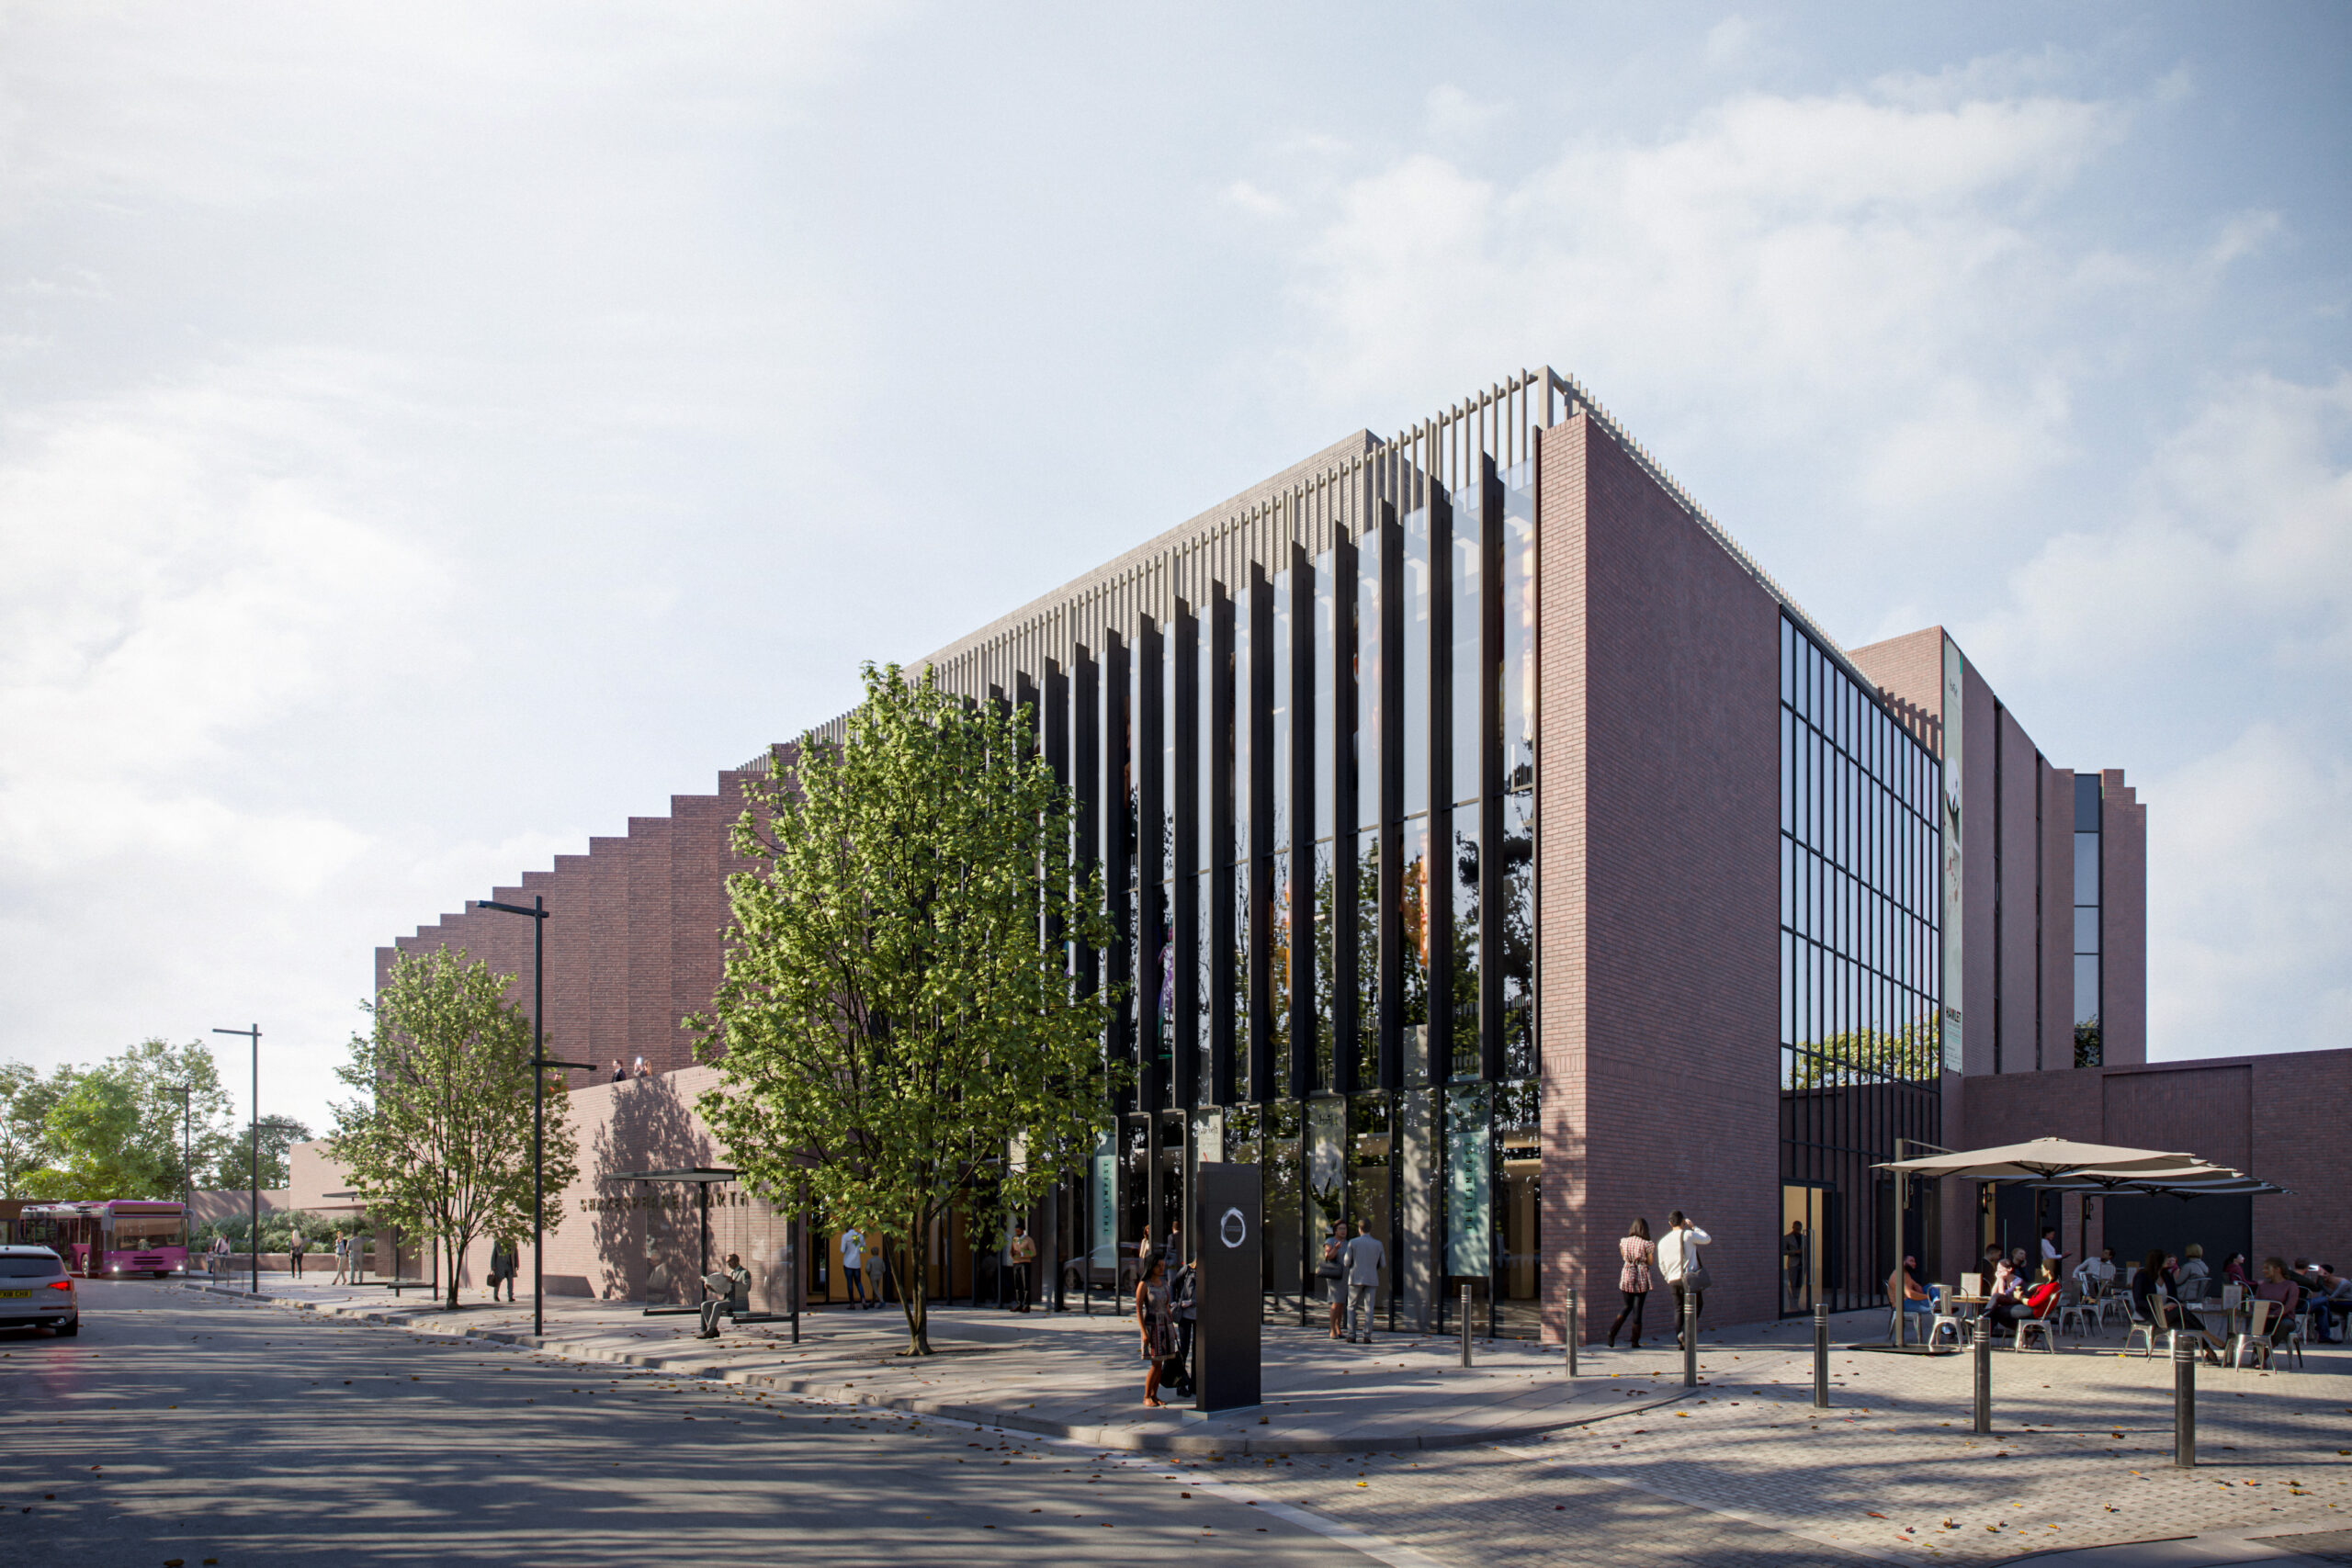 Shakespeare North Playhouse on target to open in summer 2022